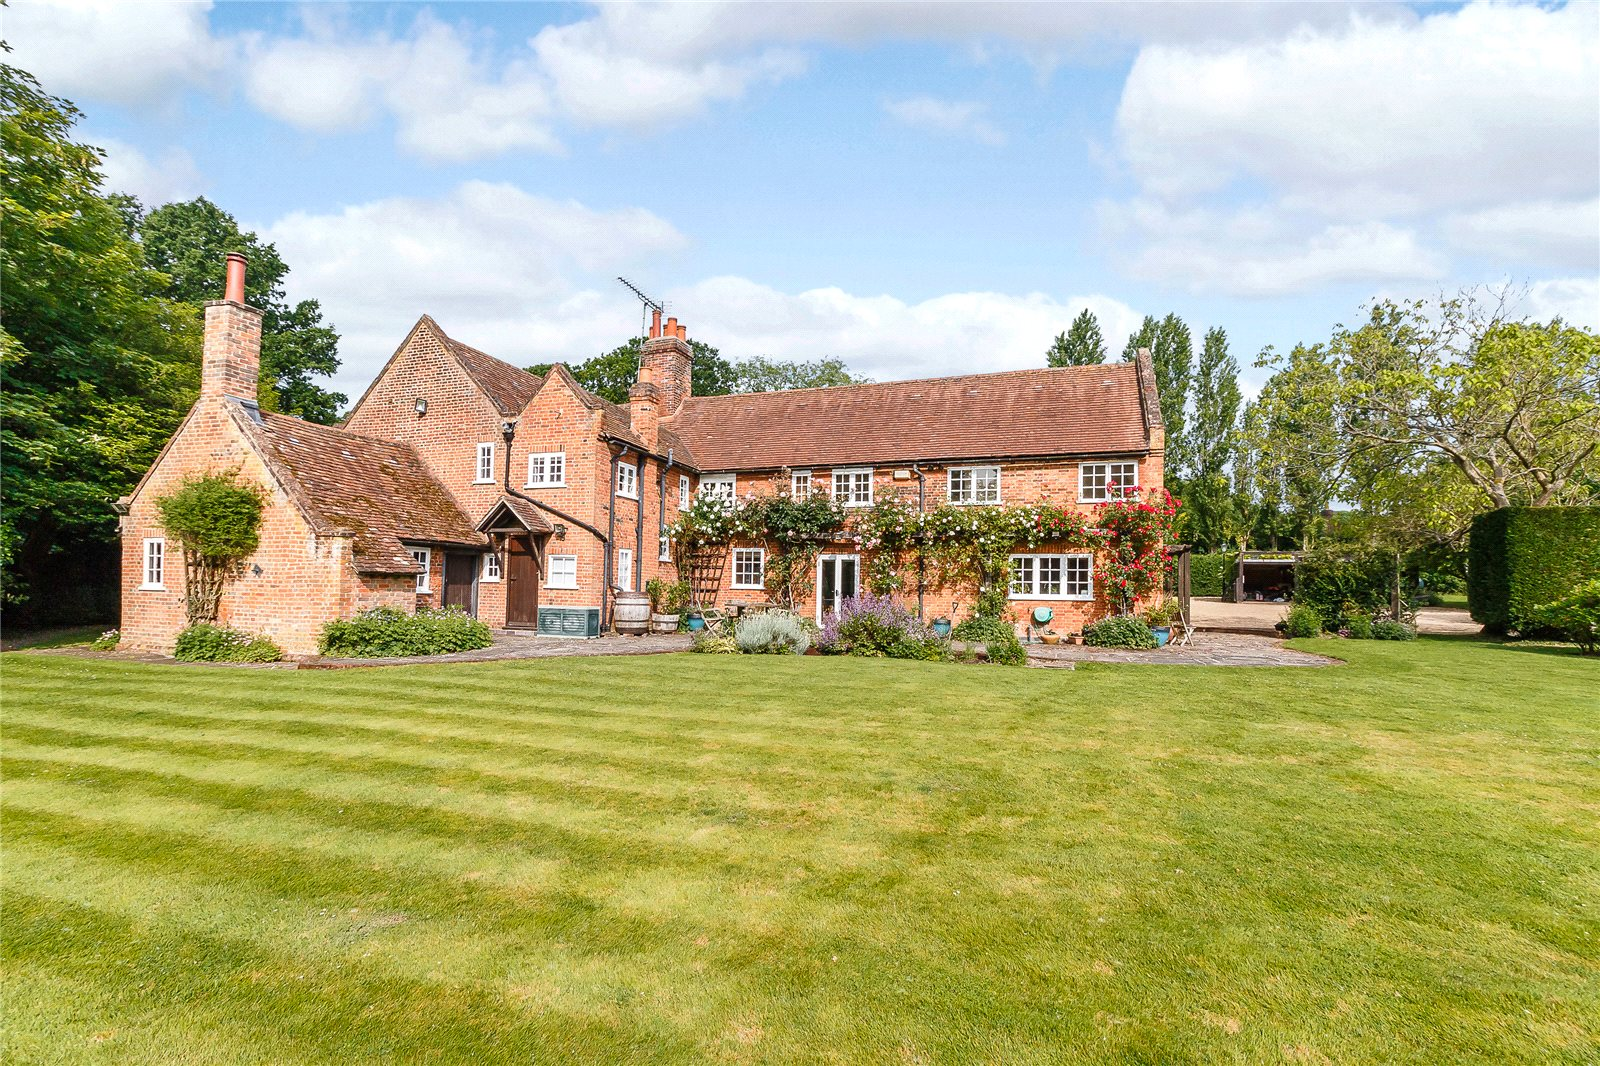 Single Family Home for Sale at Newbarn Lane, Seer Green, Beaconsfield, Buckinghamshire, HP9 Beaconsfield, England